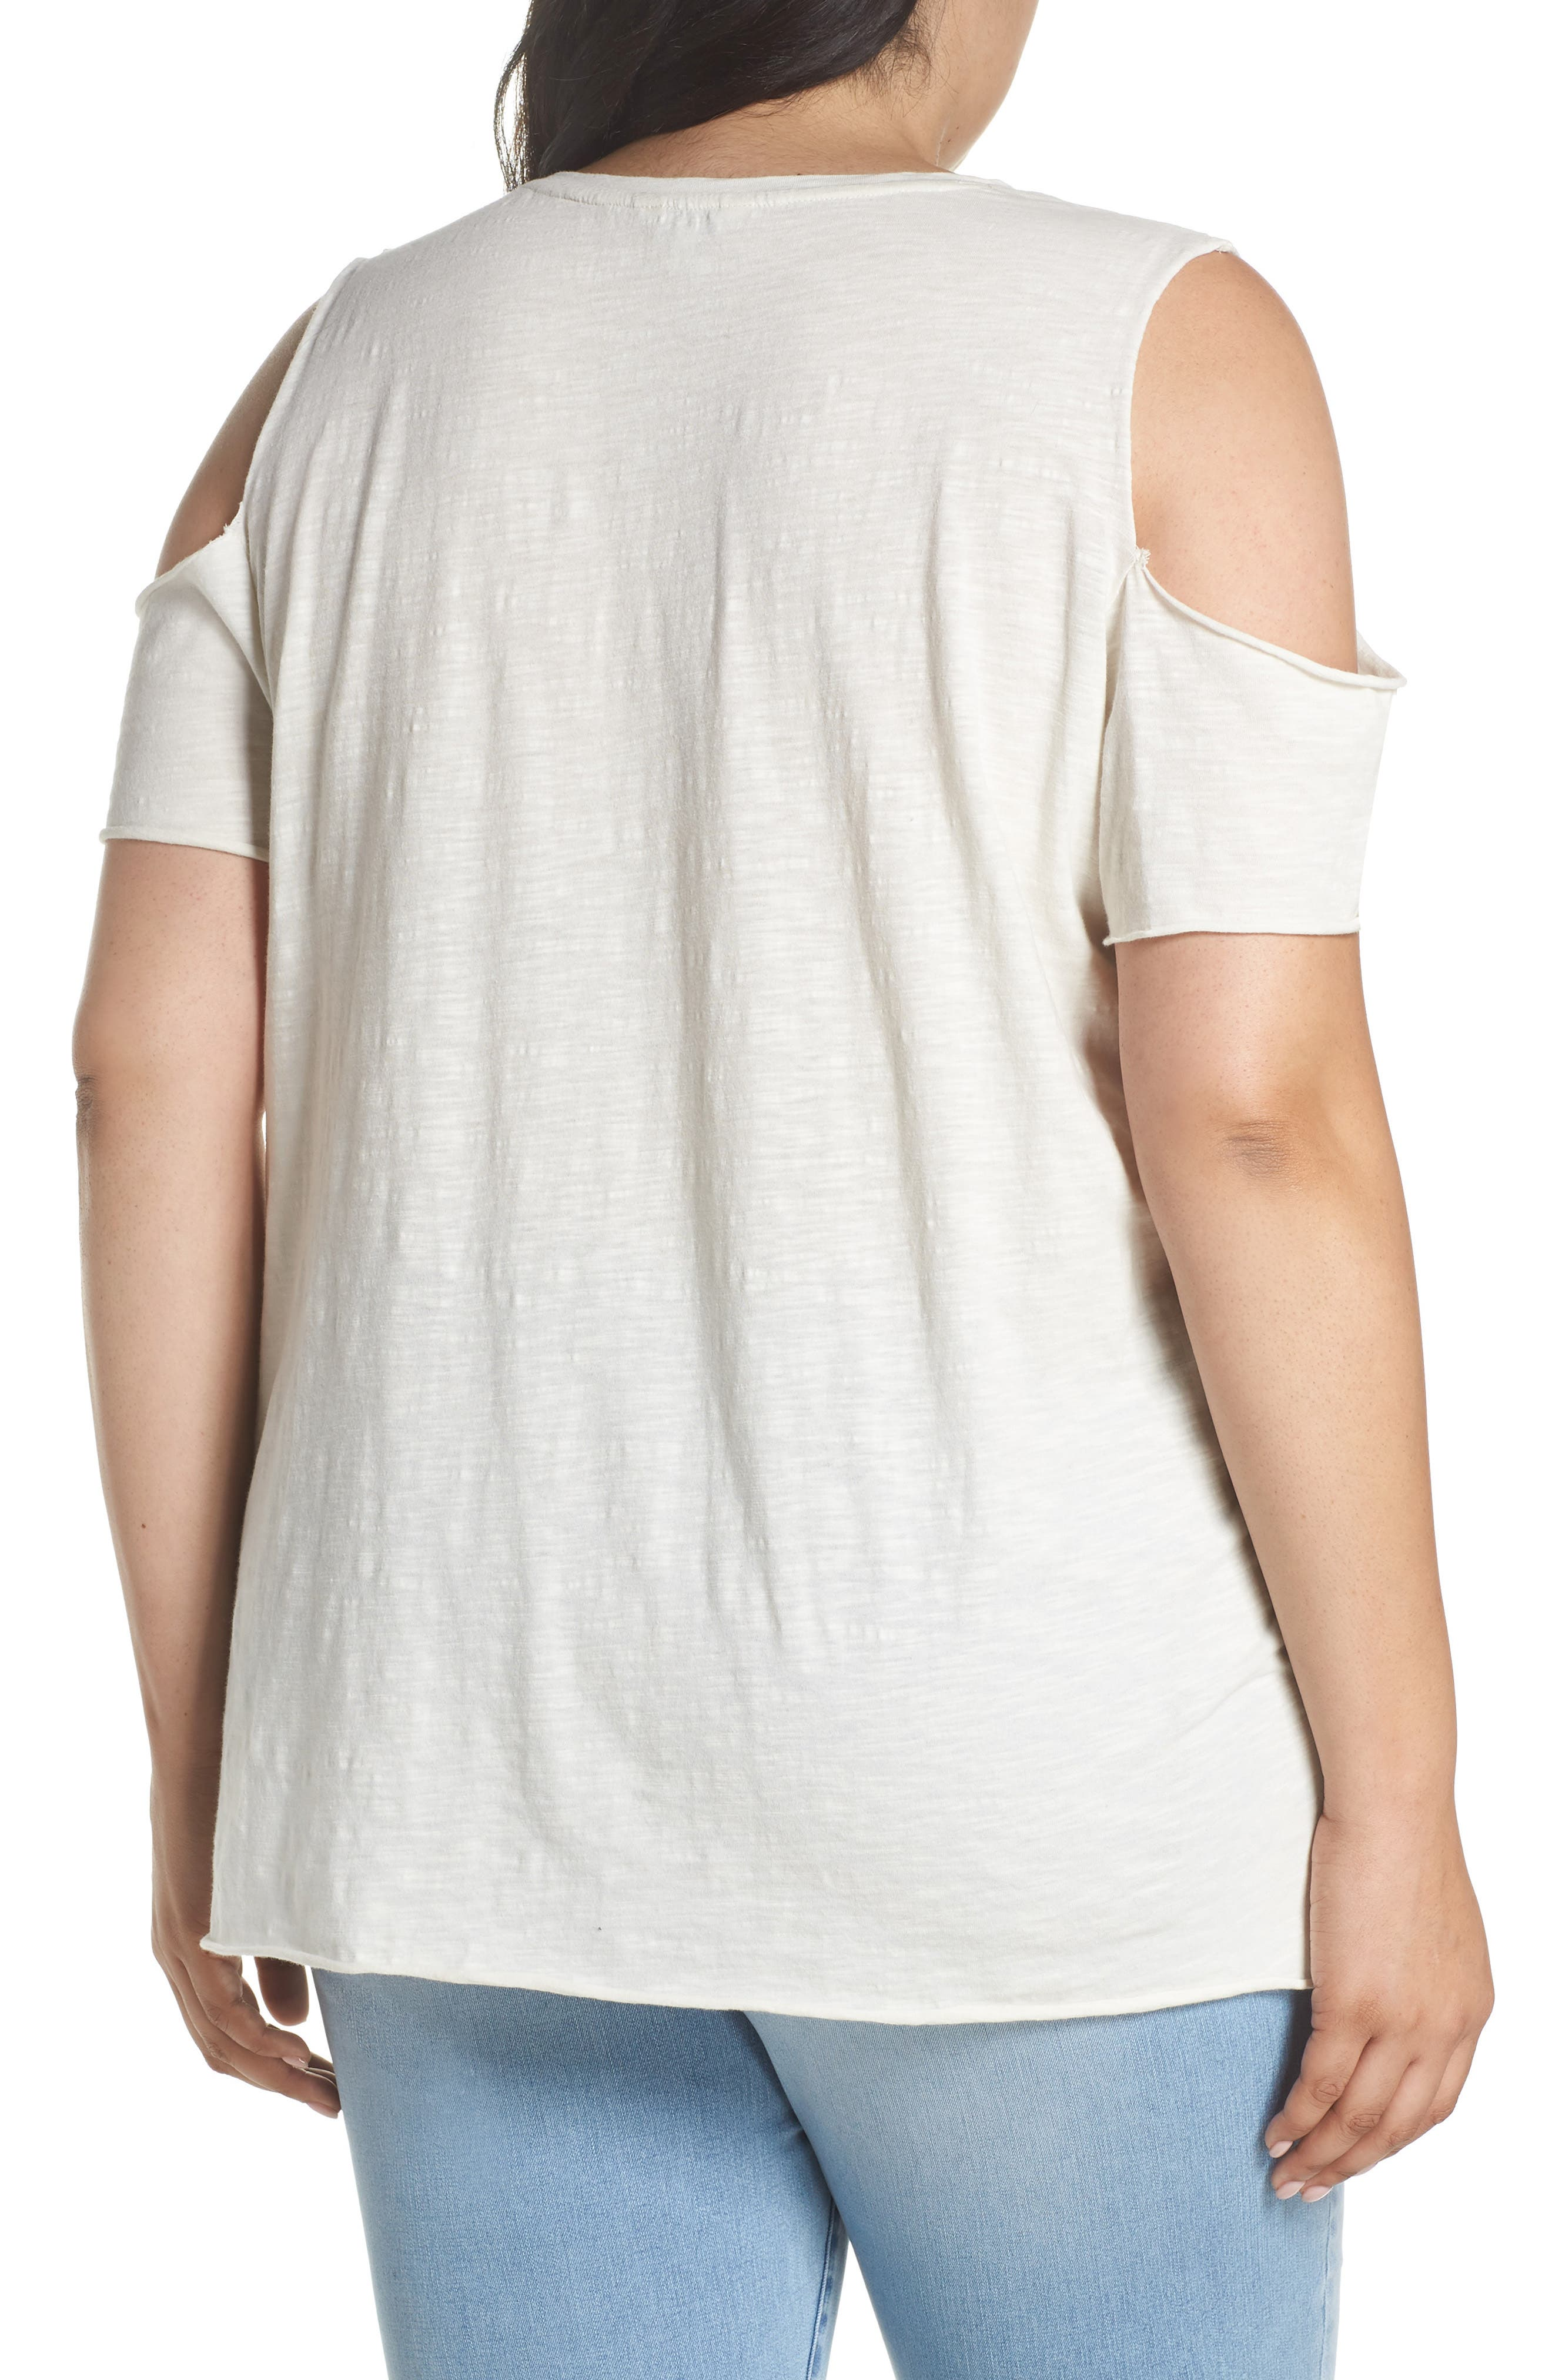 Alternate Image 2  - Lucky Brand Floral Embroidered Tee (Plus Size)